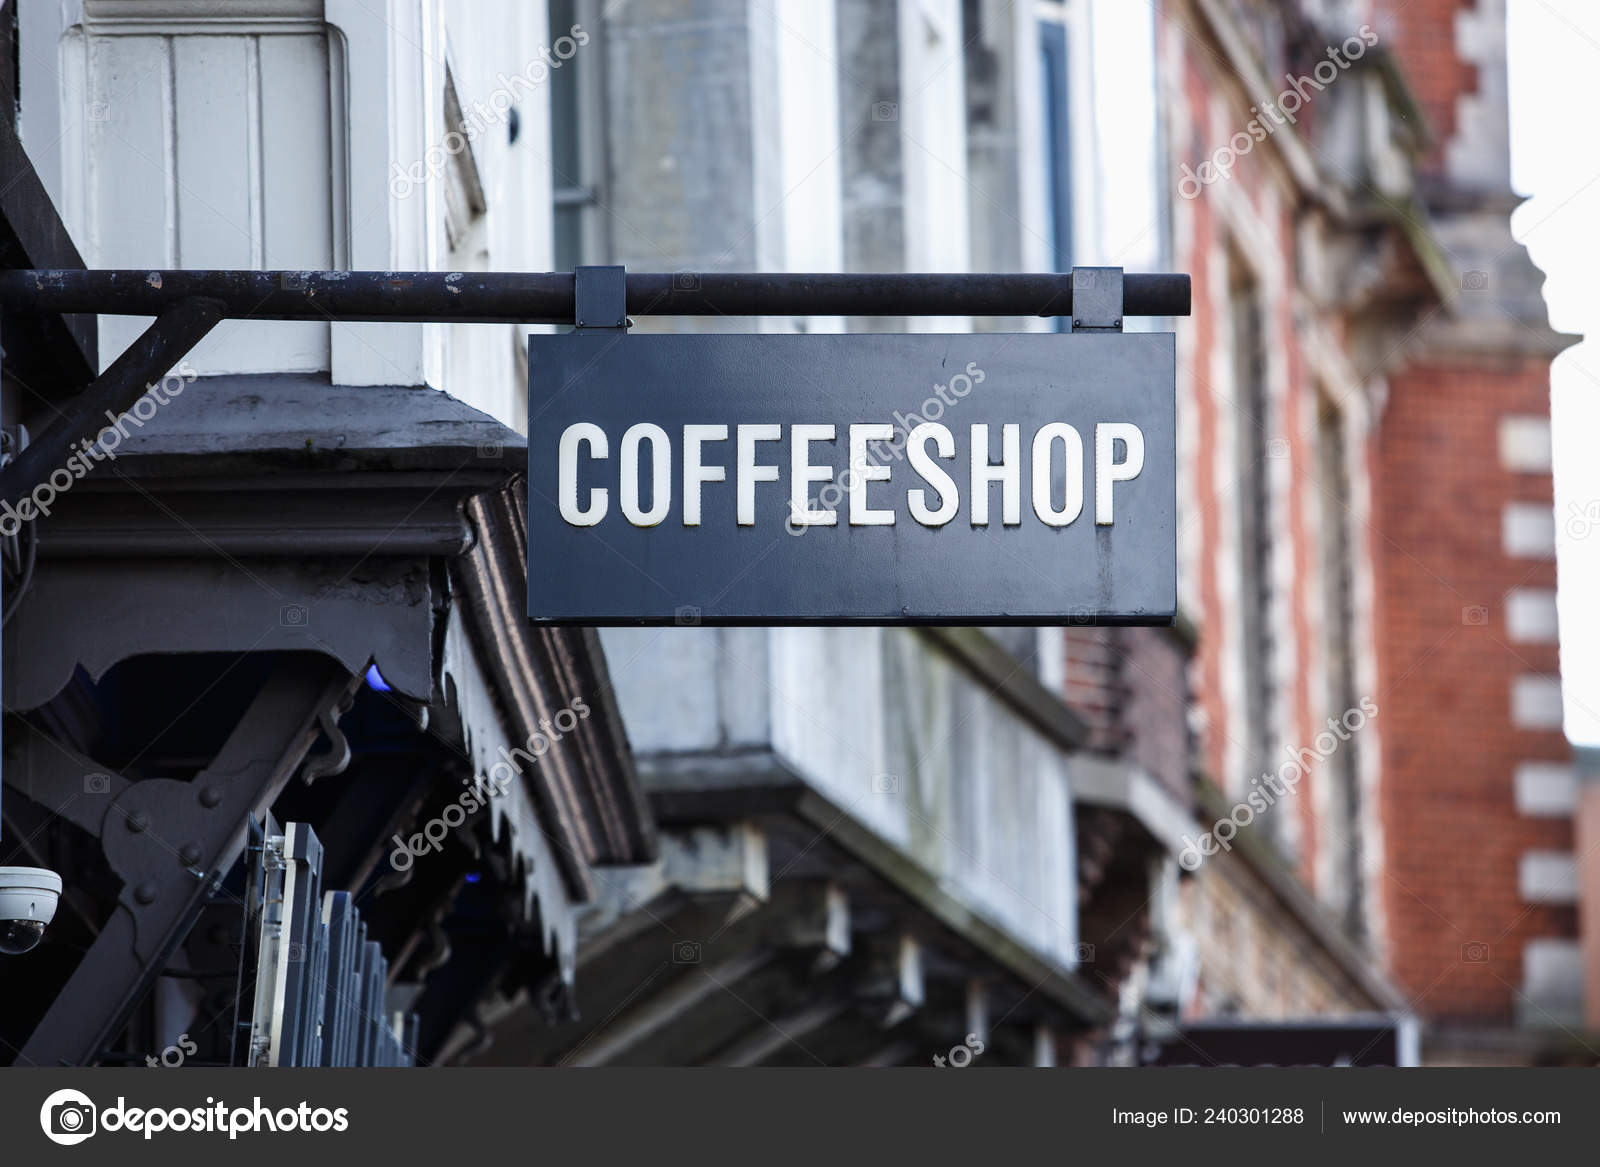 Coffeeshop Signboard Cannabis Cafe Amsterdam City